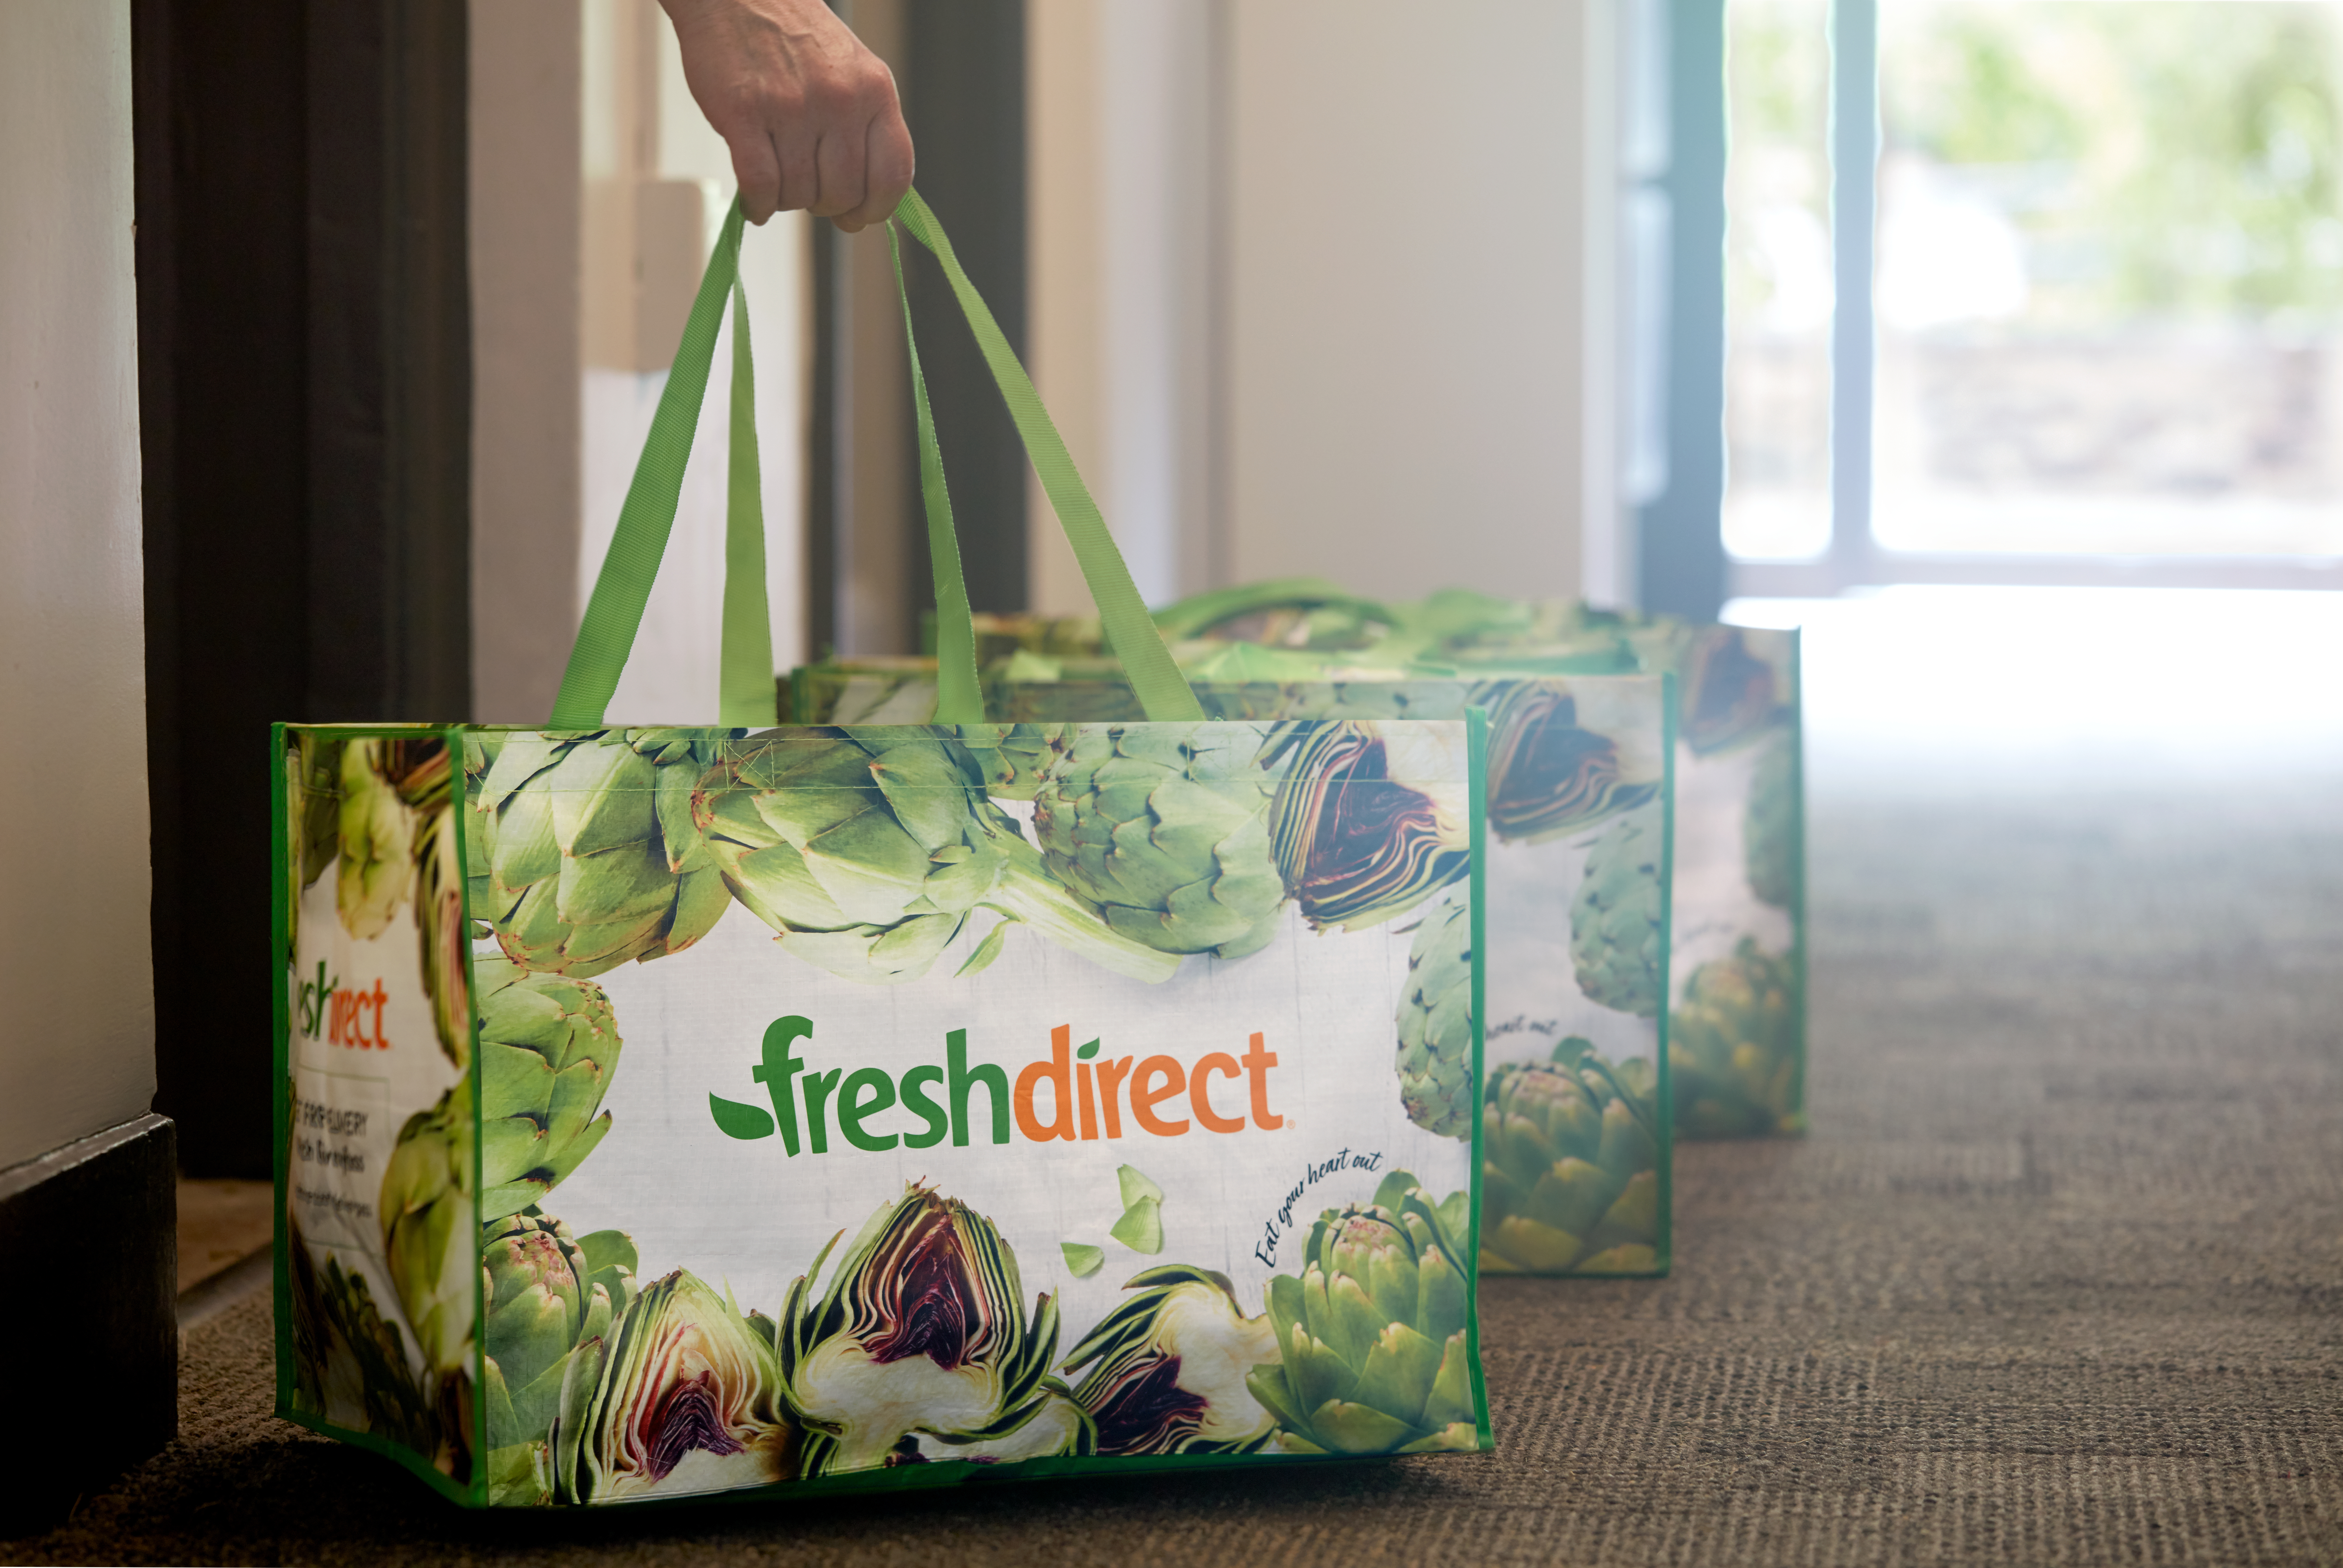 Ahold Delhaize and Centerbridge Partners successfully complete acquisition of FreshDirect after receiving regulatory clearance from the FTC